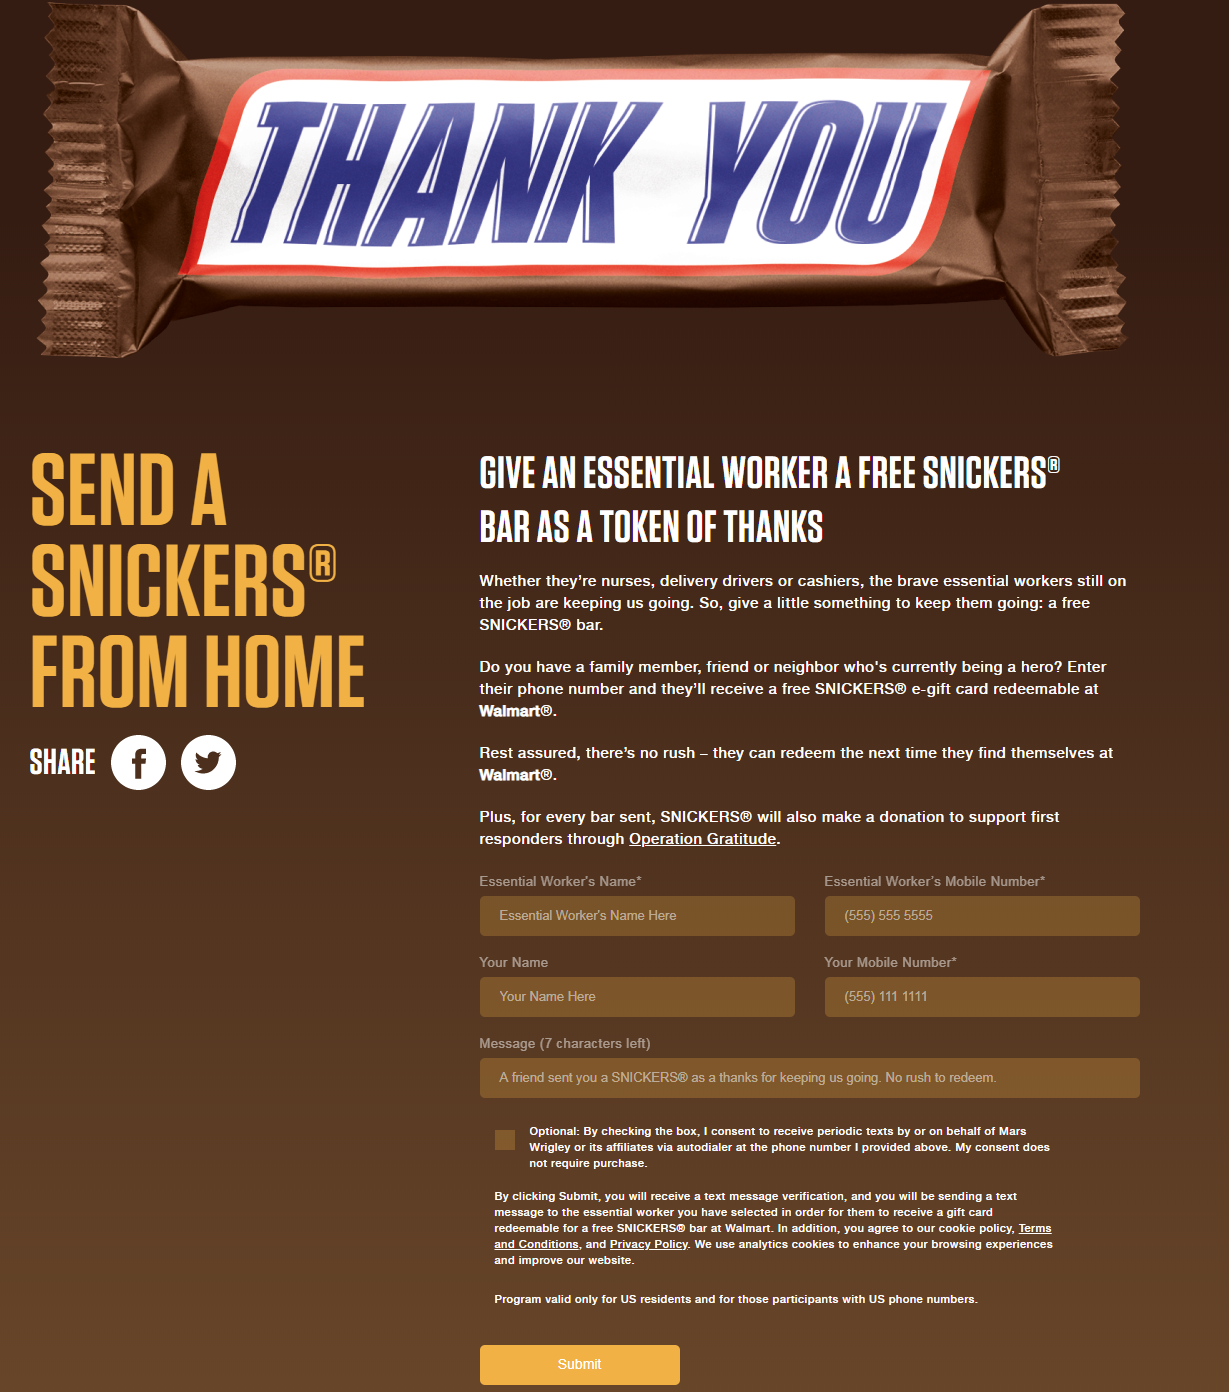 participate in the Send a Snickers from the Home promotion: